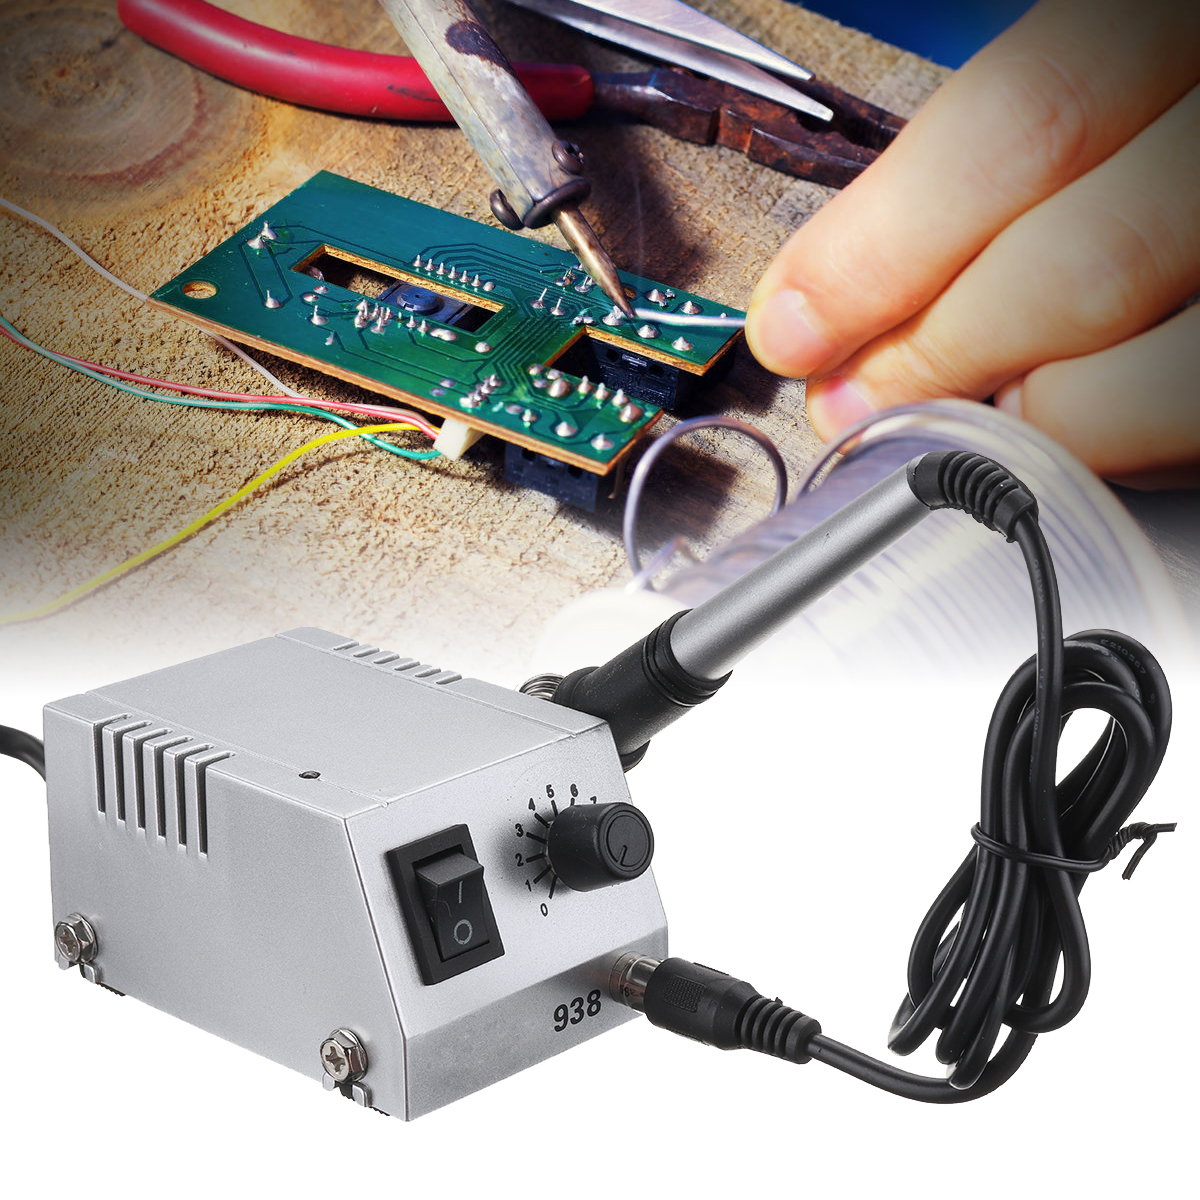 BK-938 Mini Electric Soldering Station Solder Iron Welding Machine Wattage Temperature Adjustable